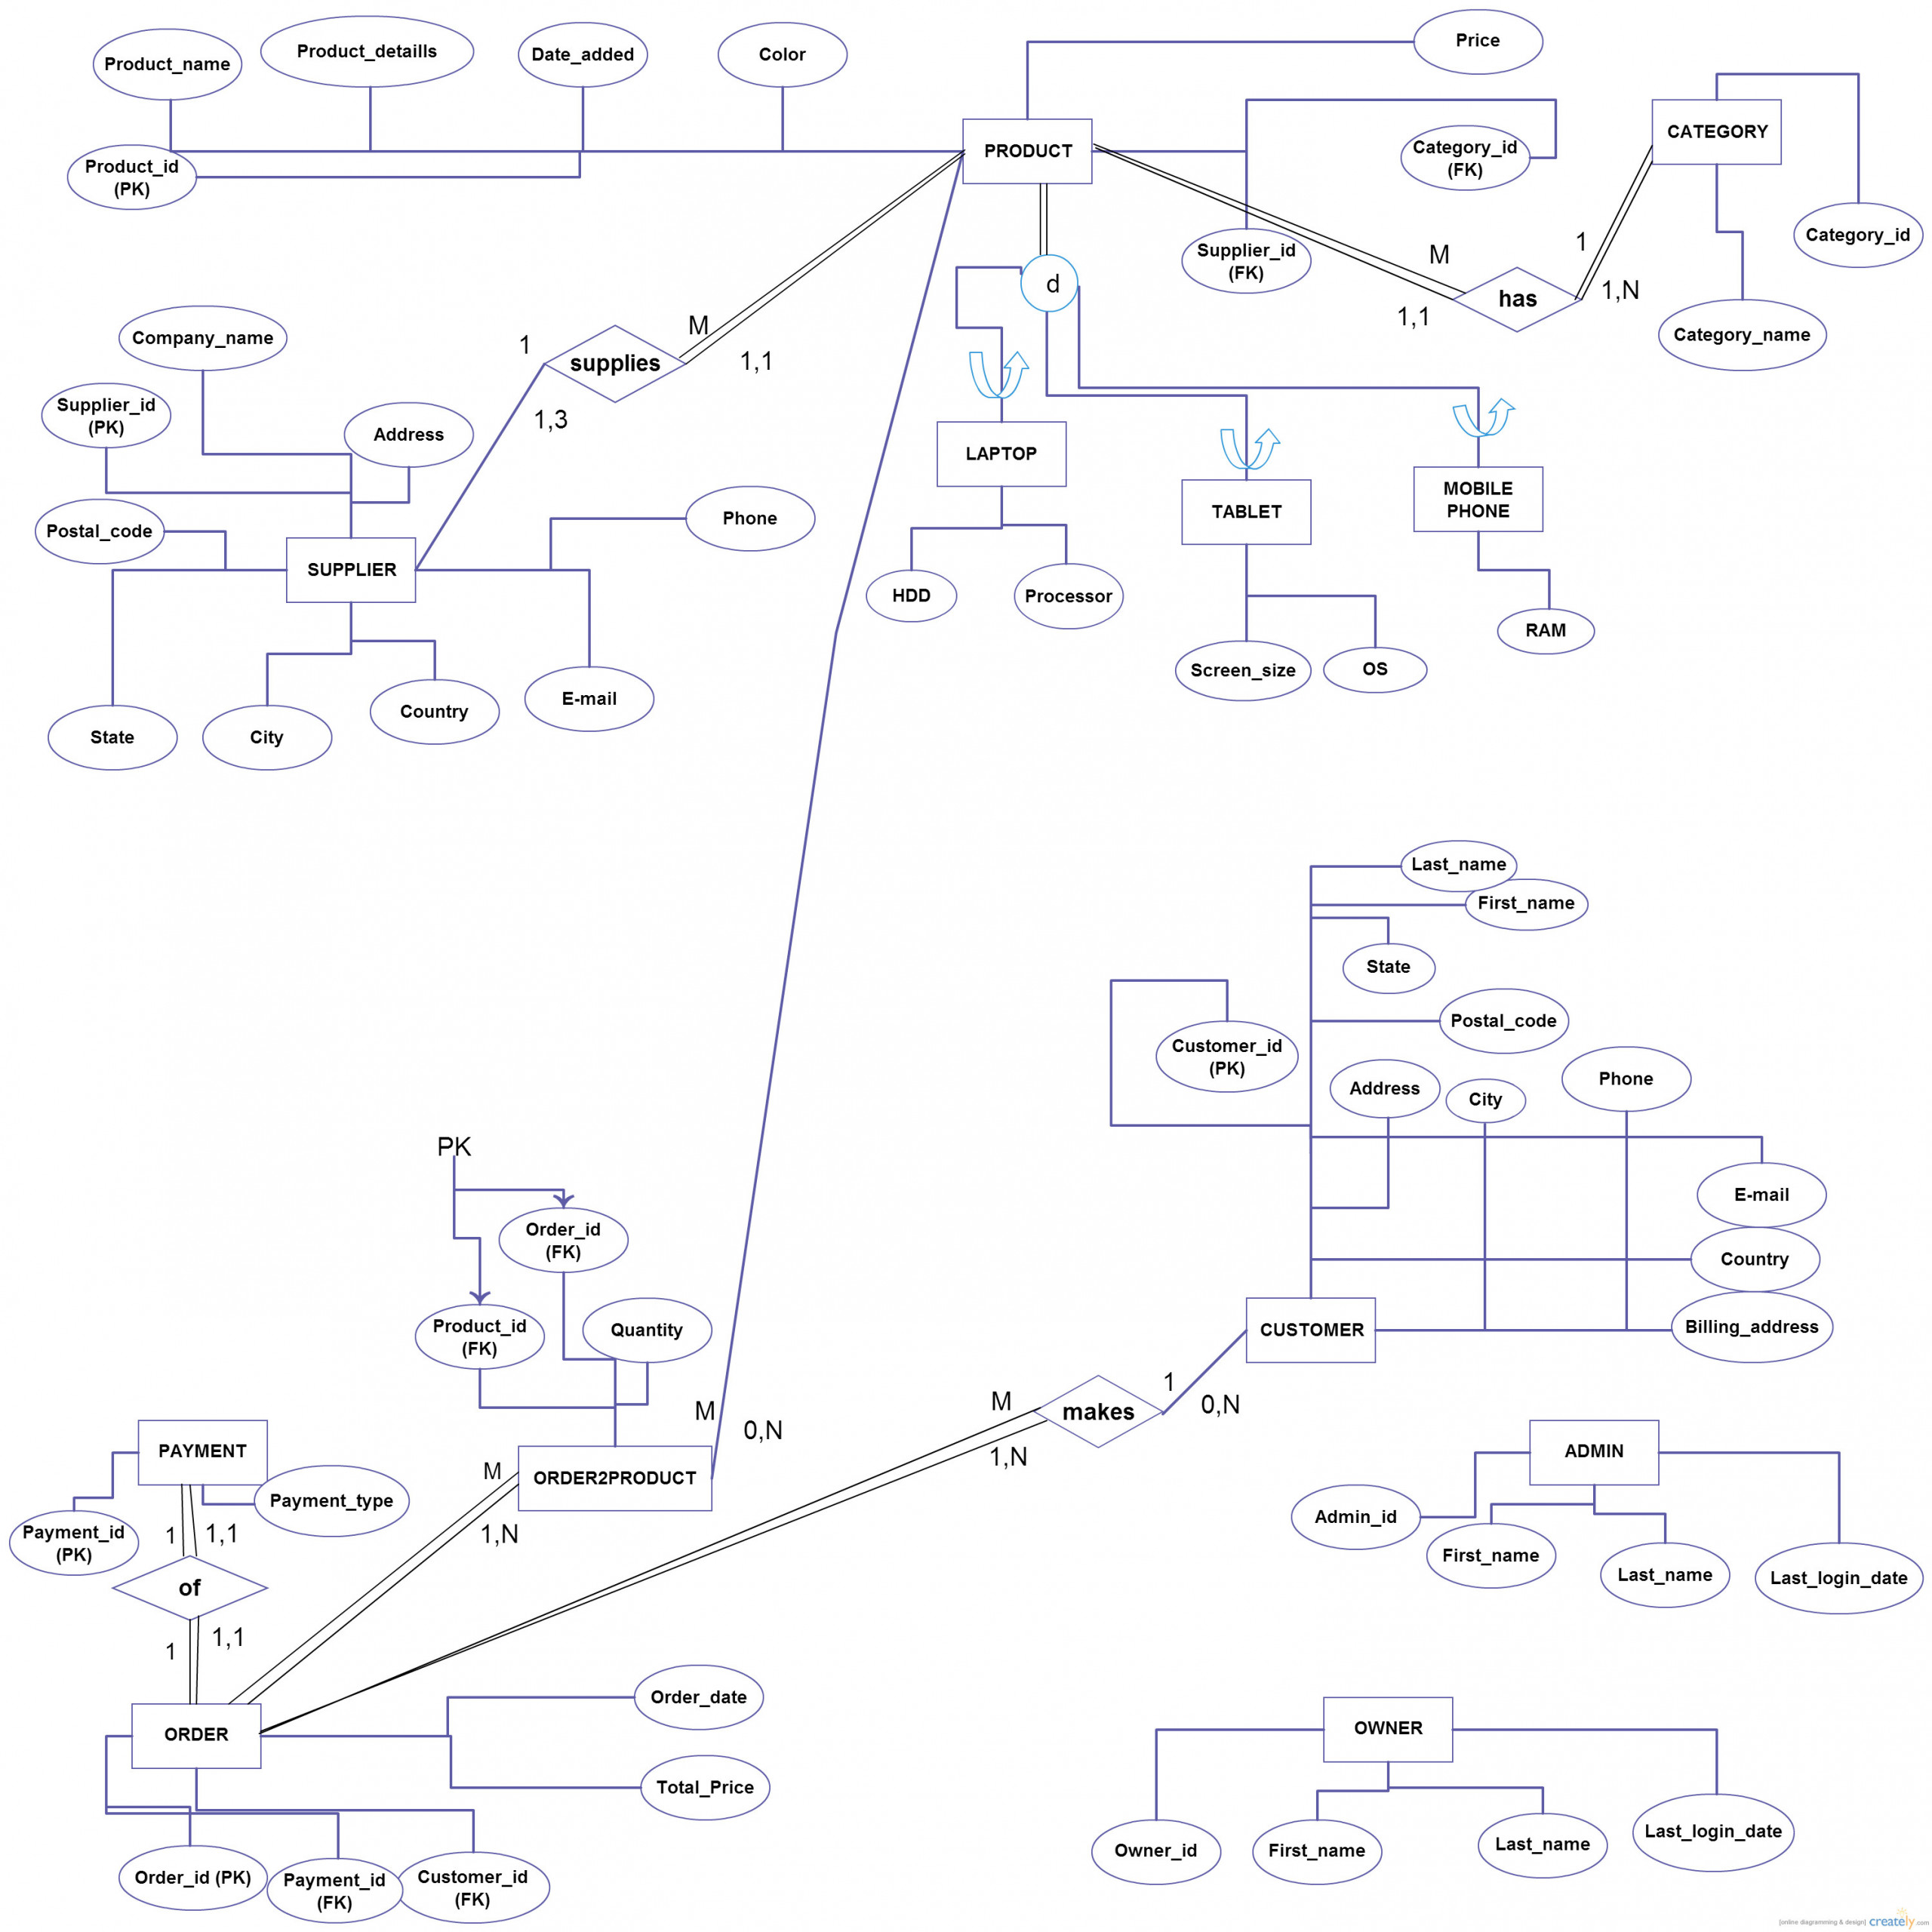 Does This E-R/eer Diagram Contain Correct Relationships And throughout Er Diagram Ecommerce Database